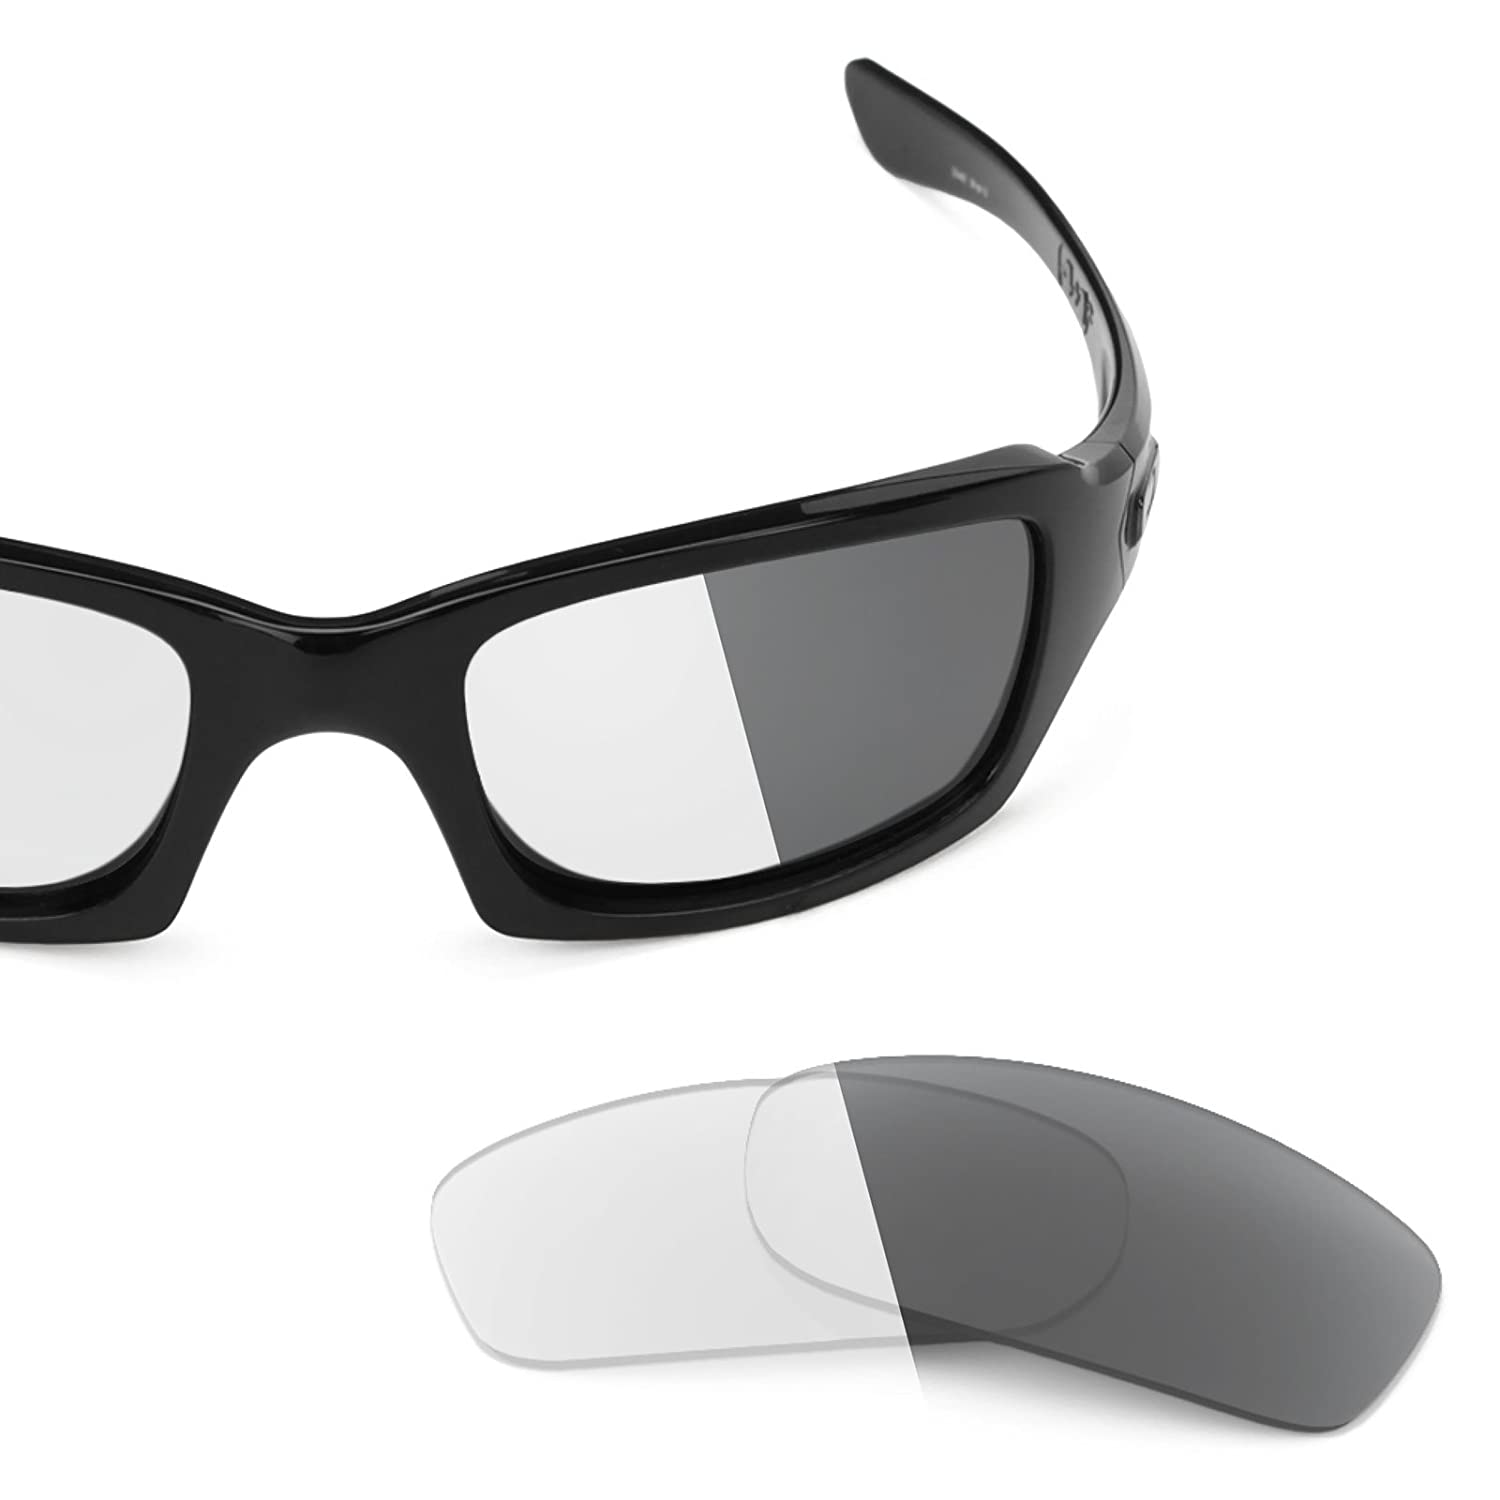 516ba1e08f0 Revant Replacement Lenses for Oakley Fives Squared Elite Adapt Grey  Photochromic  Amazon.co.uk  Clothing